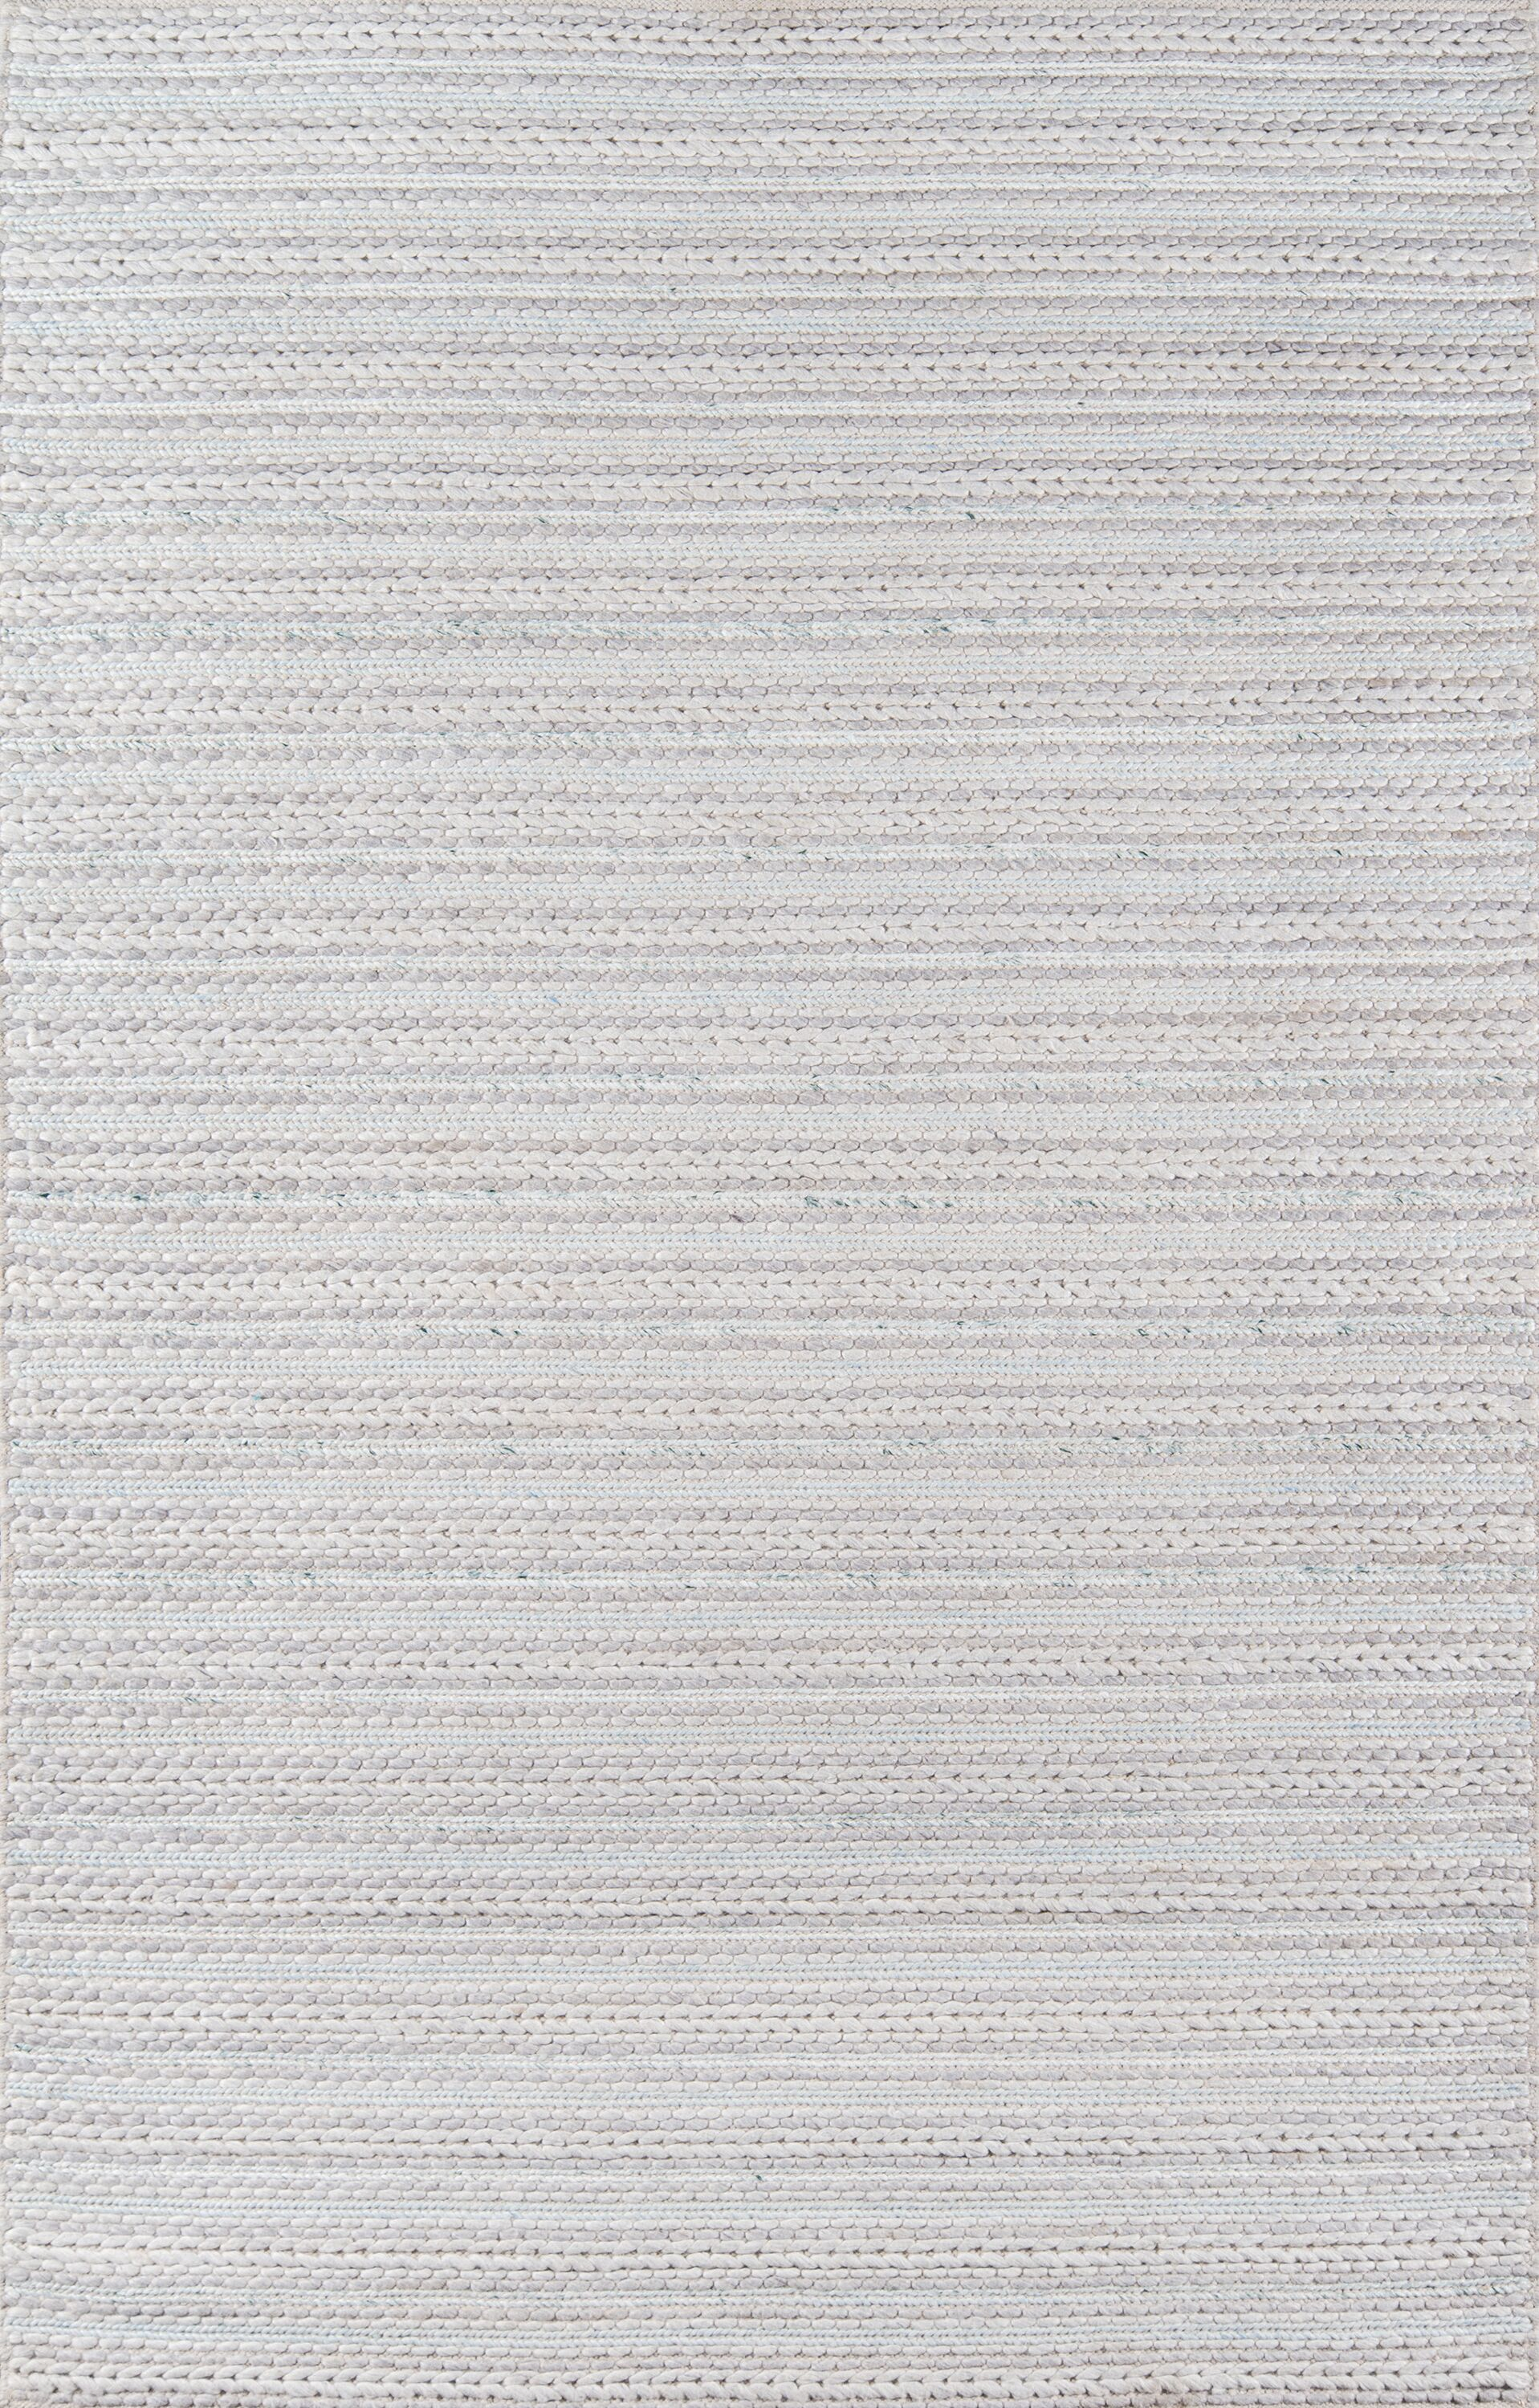 Elissa Hand-Woven Light Gray Area Rug Rug Size: Rectangle 8'9